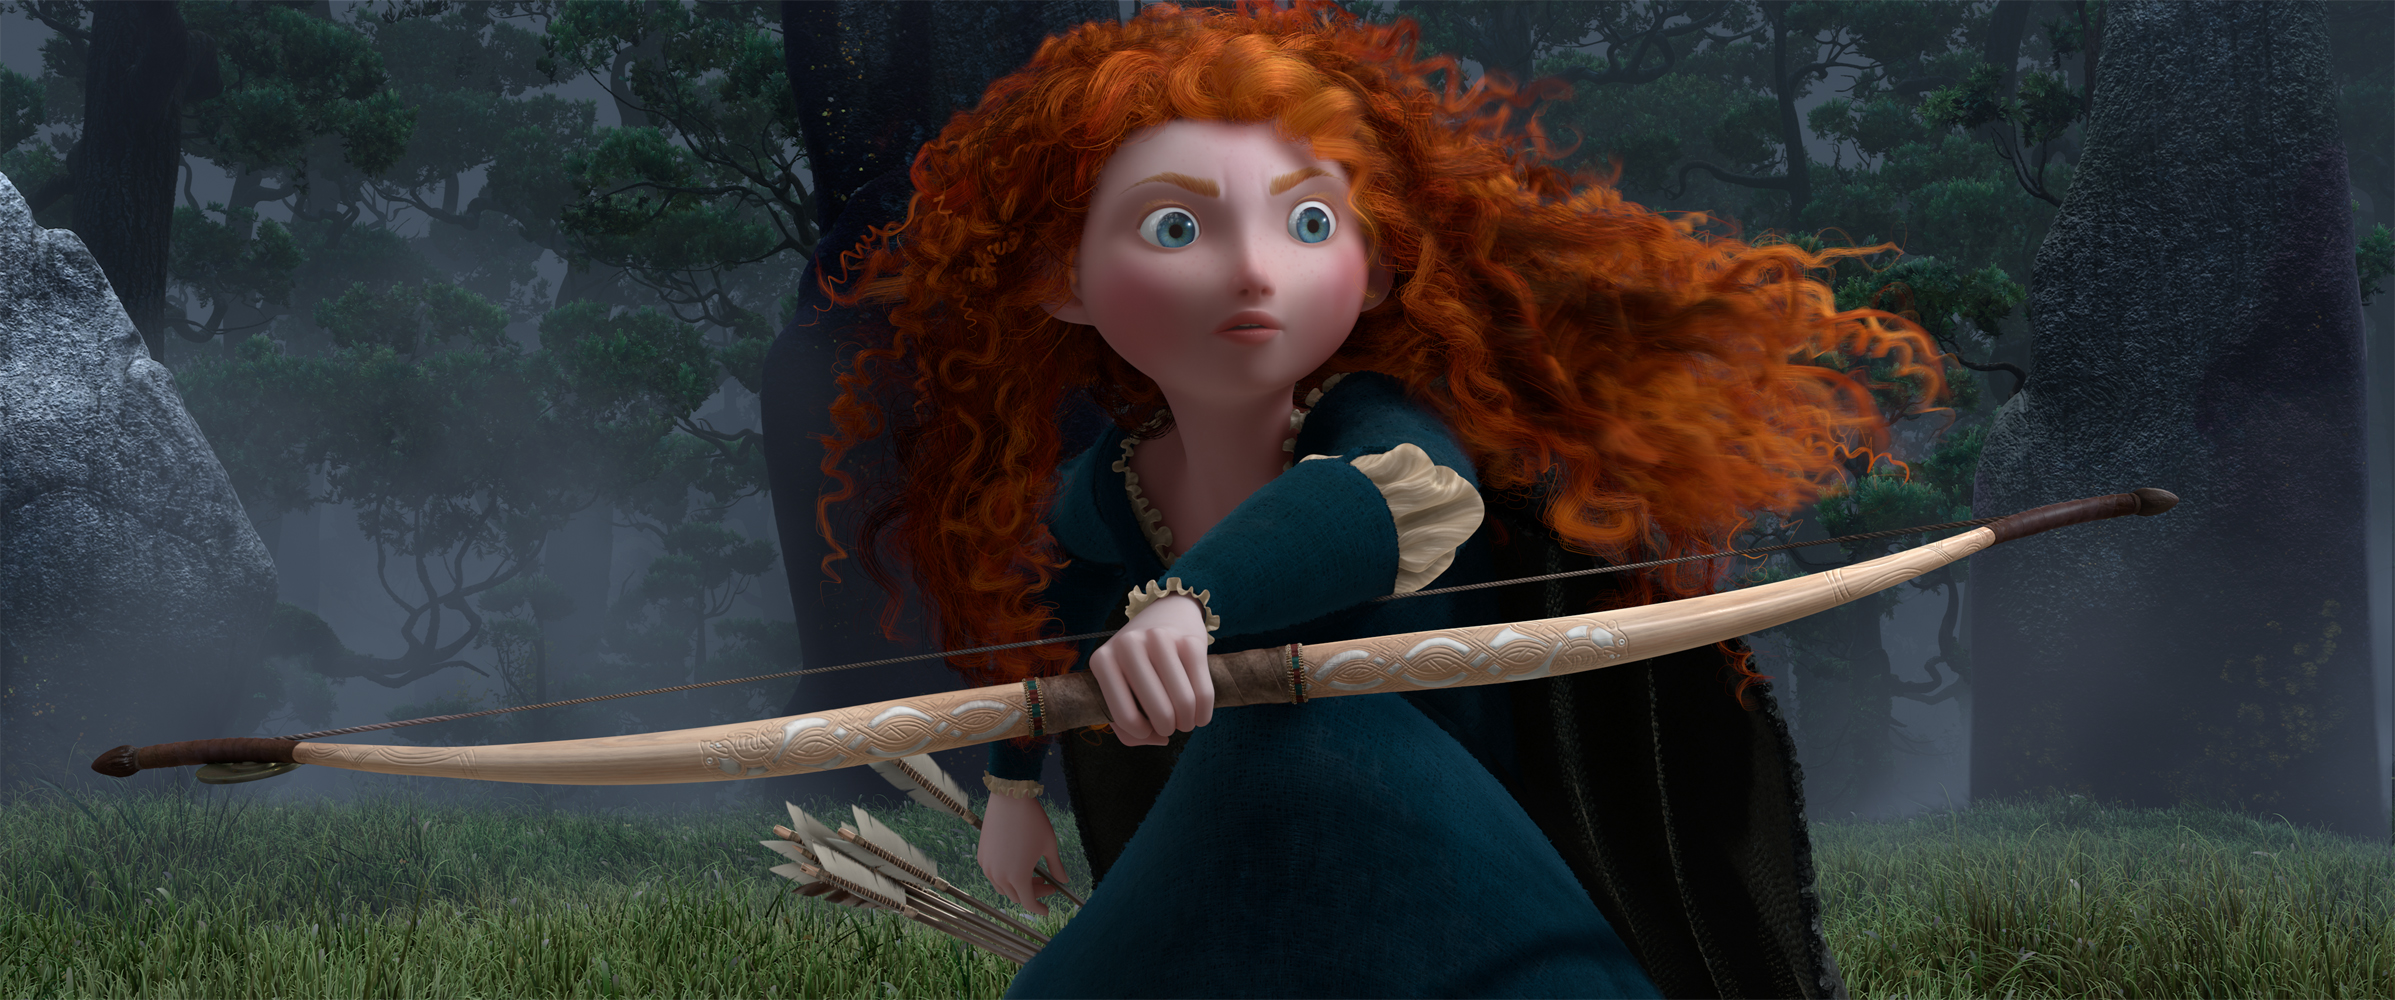 Official BRAVE Trailer Out Today from DisneyPixar